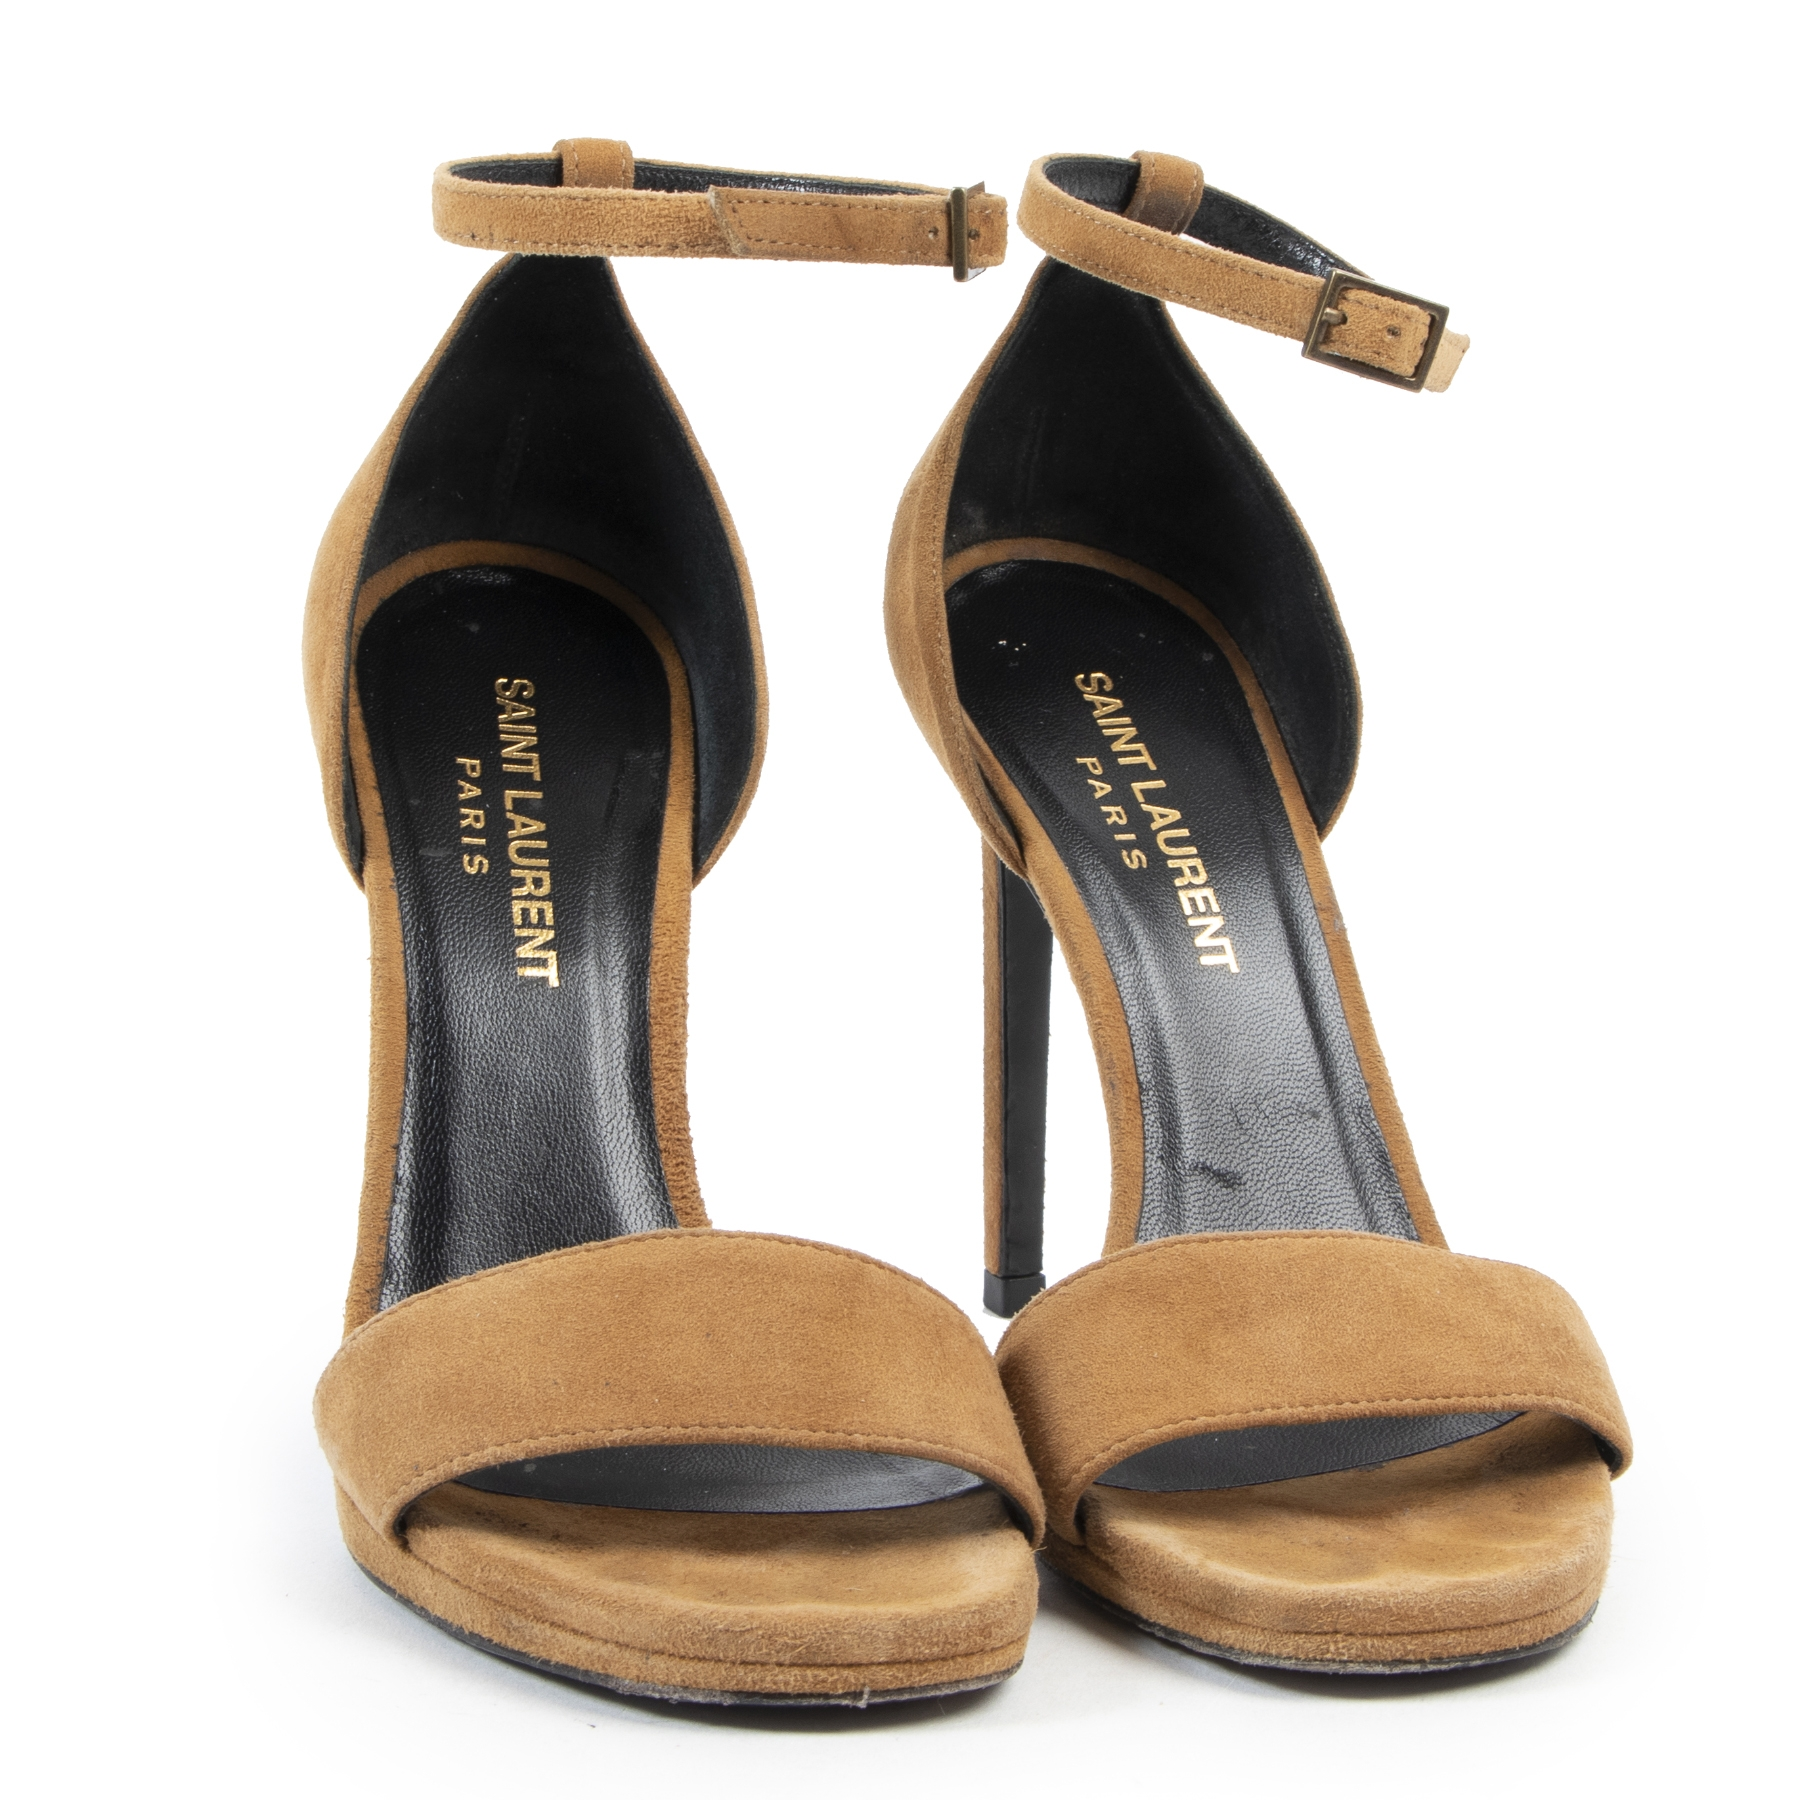 Authentic secondhand Saint Laurent Camel Suede Sandals - size 35 designer shoes fashion luxury vintage webshop safe secure online shopping